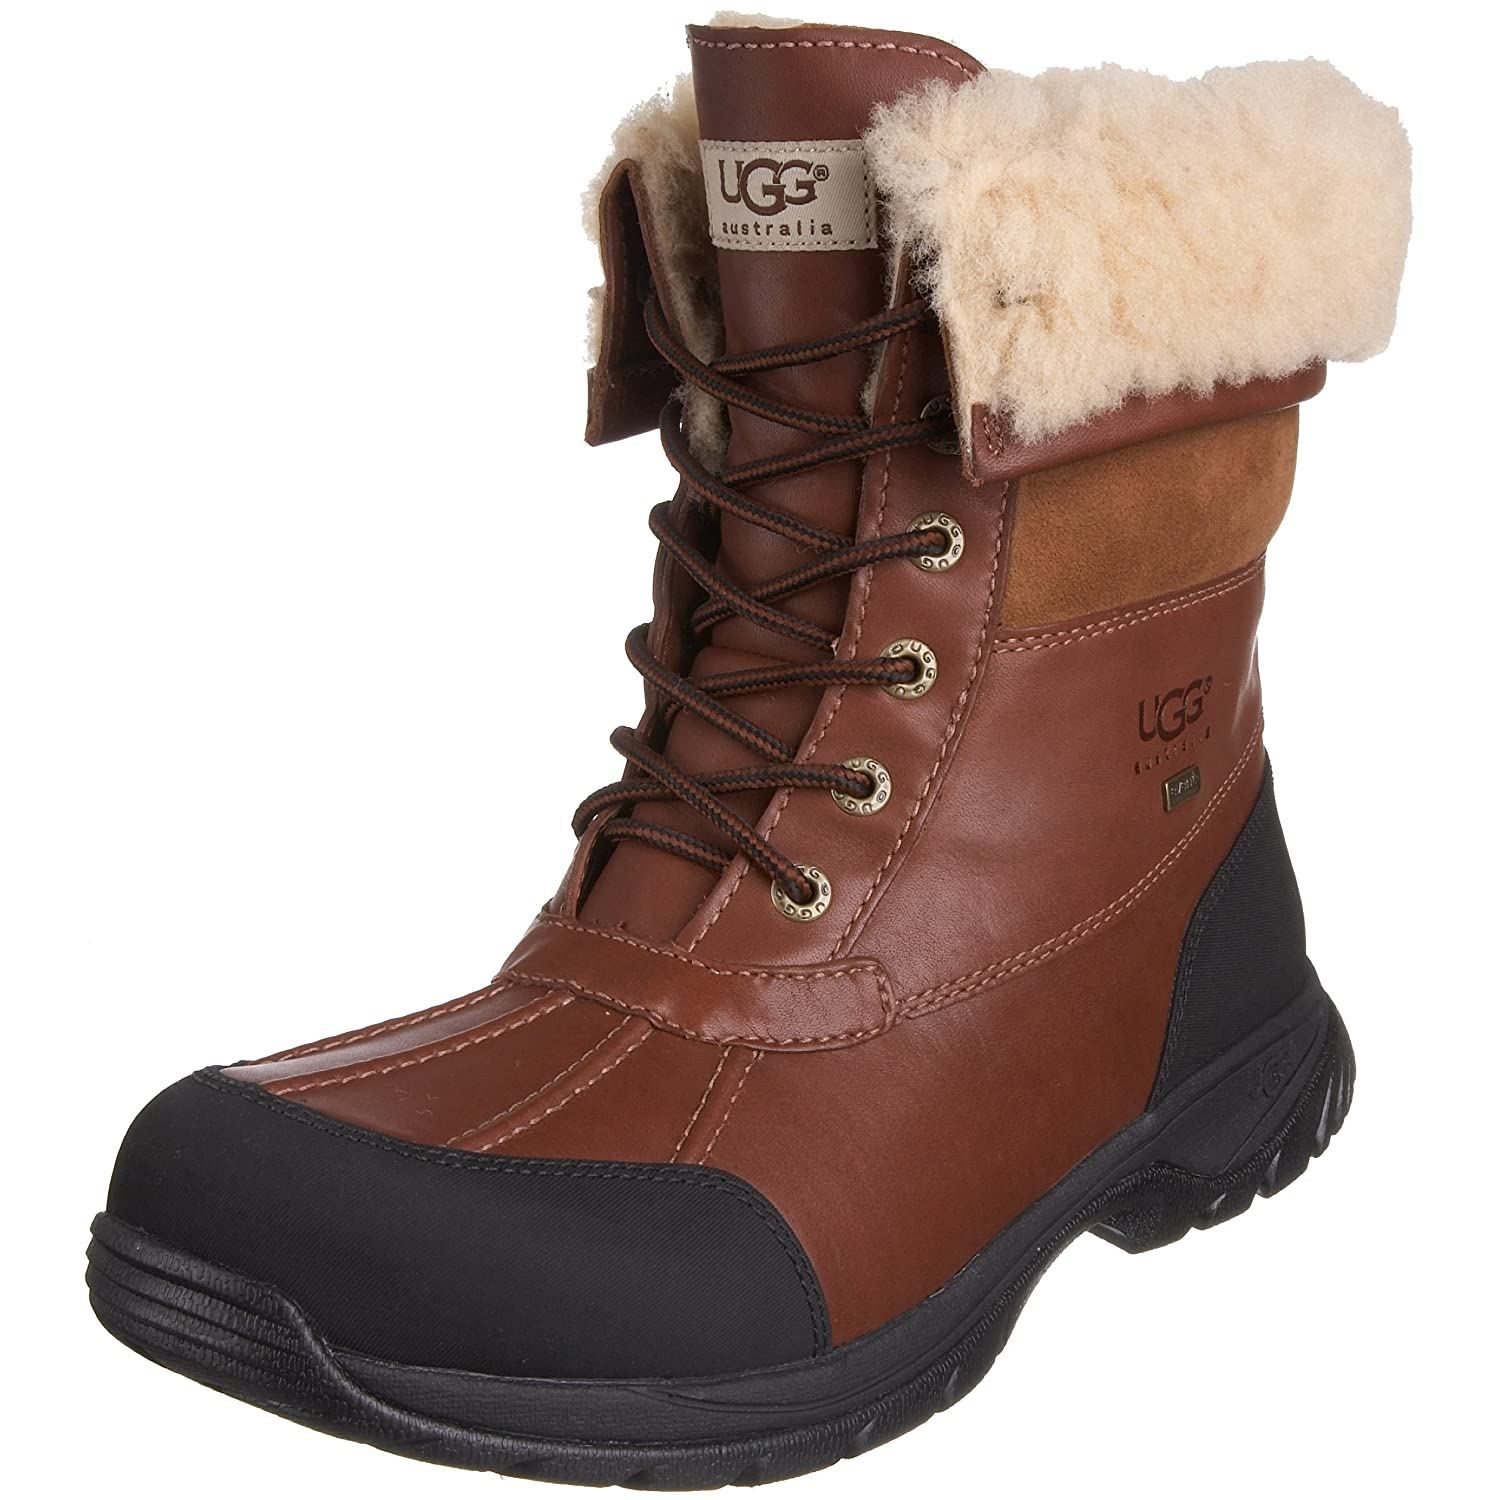 black friday ugg australia boot